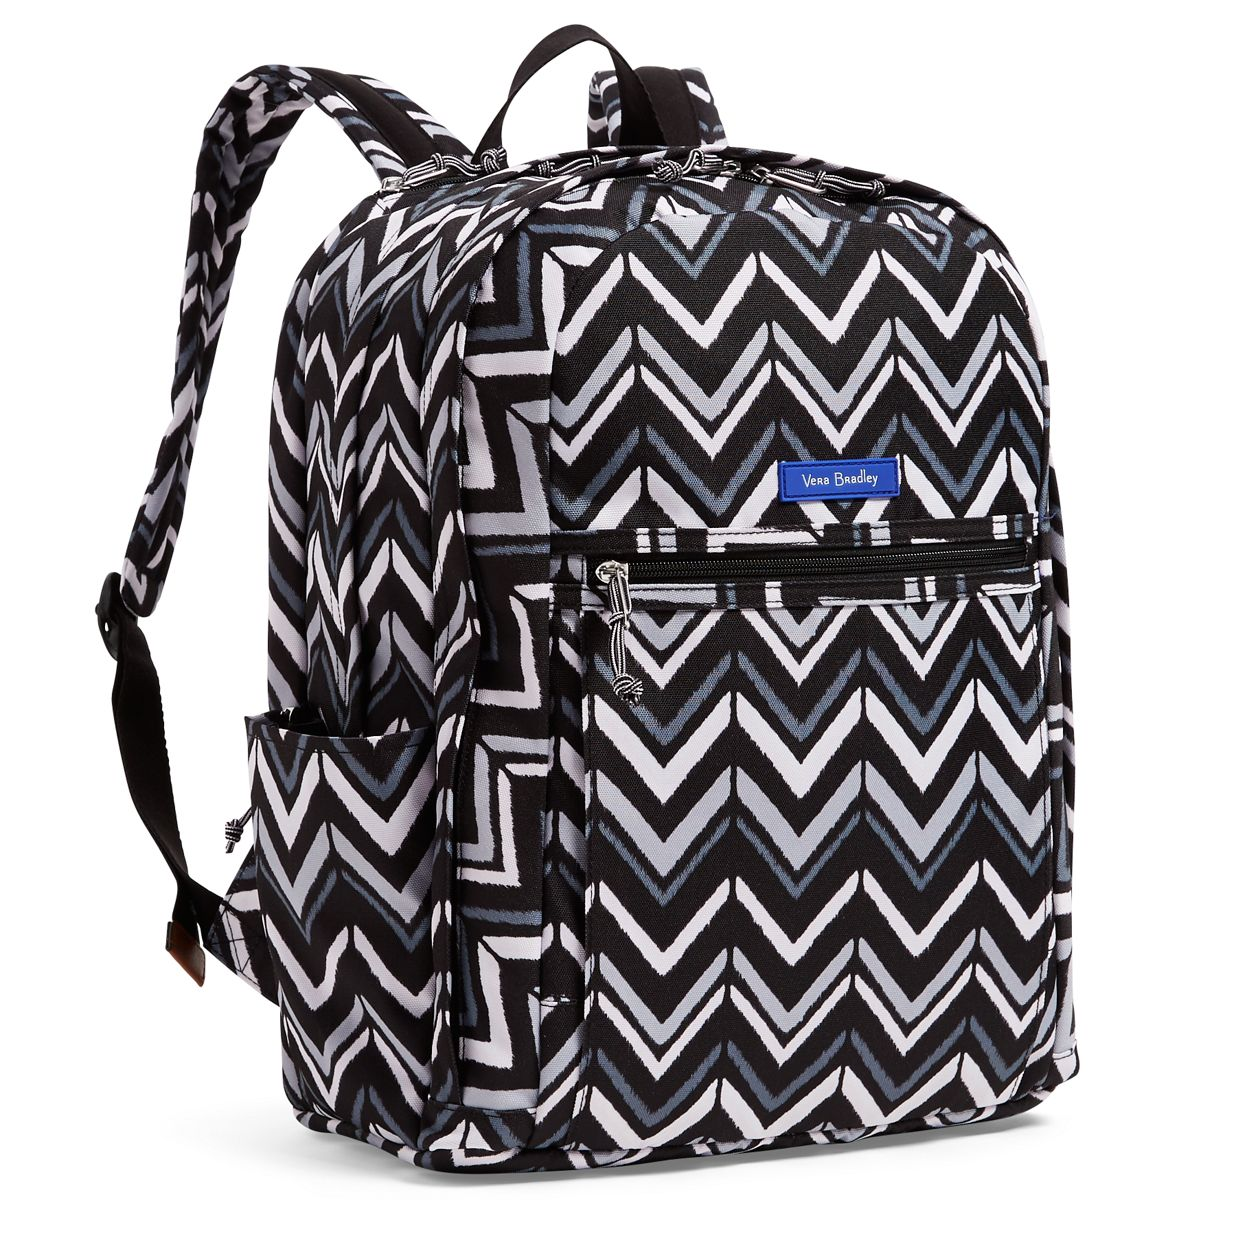 b58ec4193009 ... Image of Lighten Up Grand Backpack in Lotus Chevron